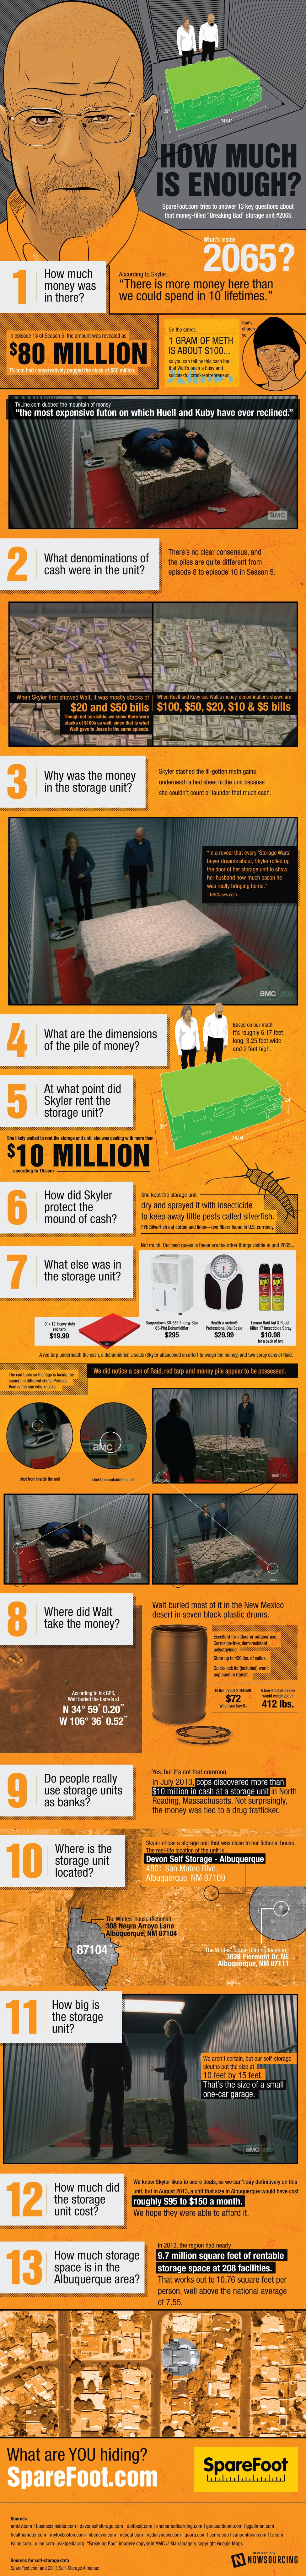 13 Burning Questions About Breaking Bad's Storage Unit [Infographic]